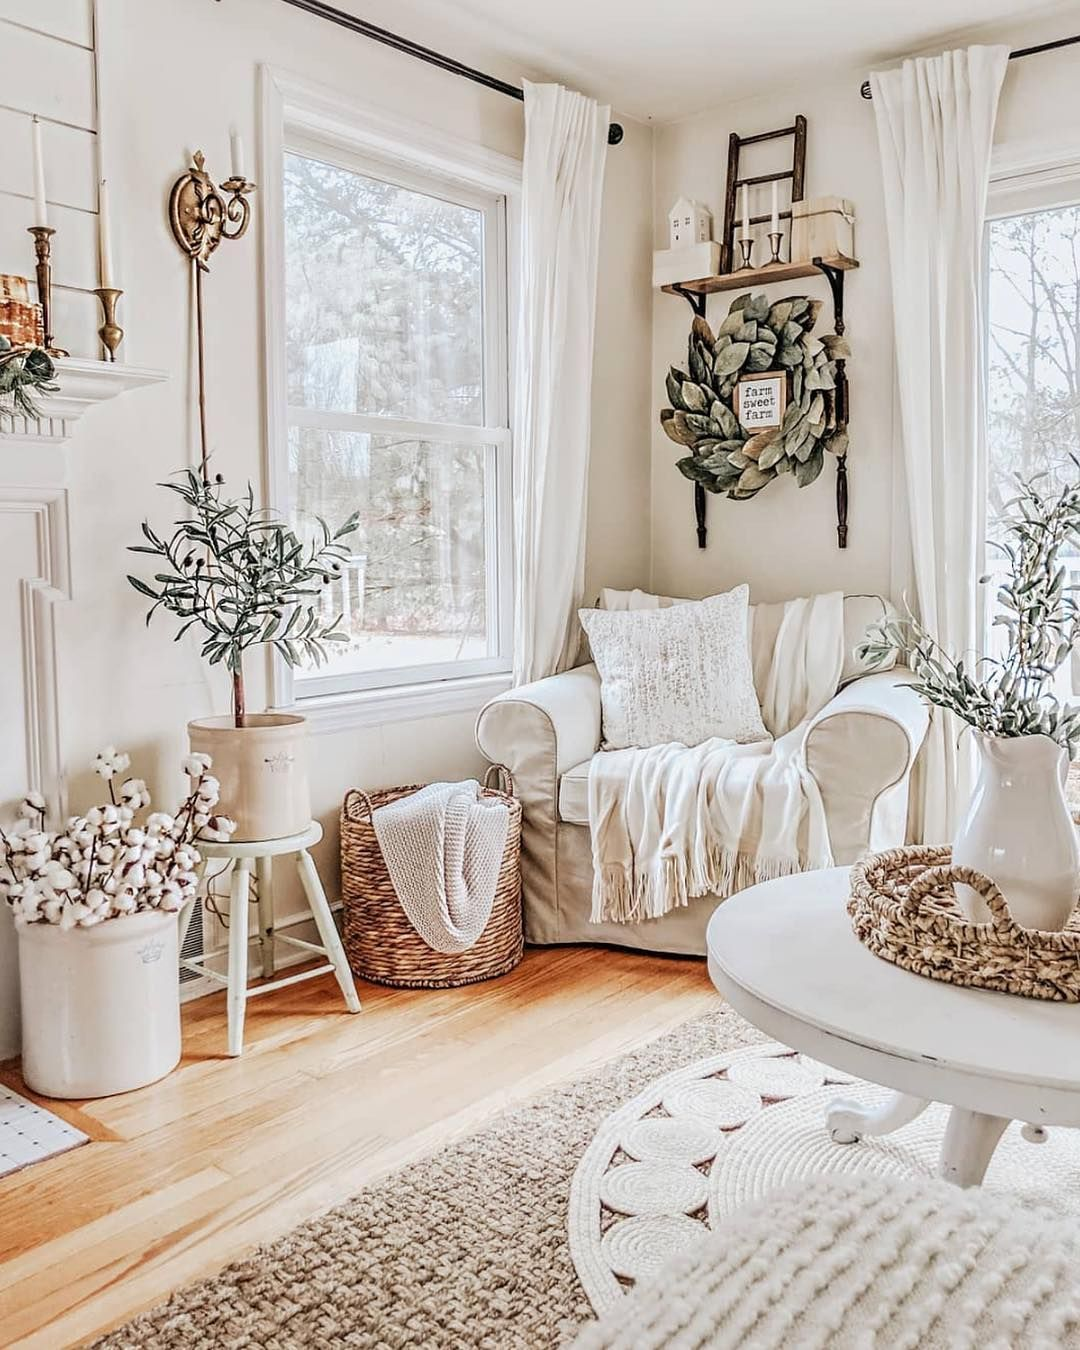 American Farmhouse Style On Instagram When It S Snowy Outside